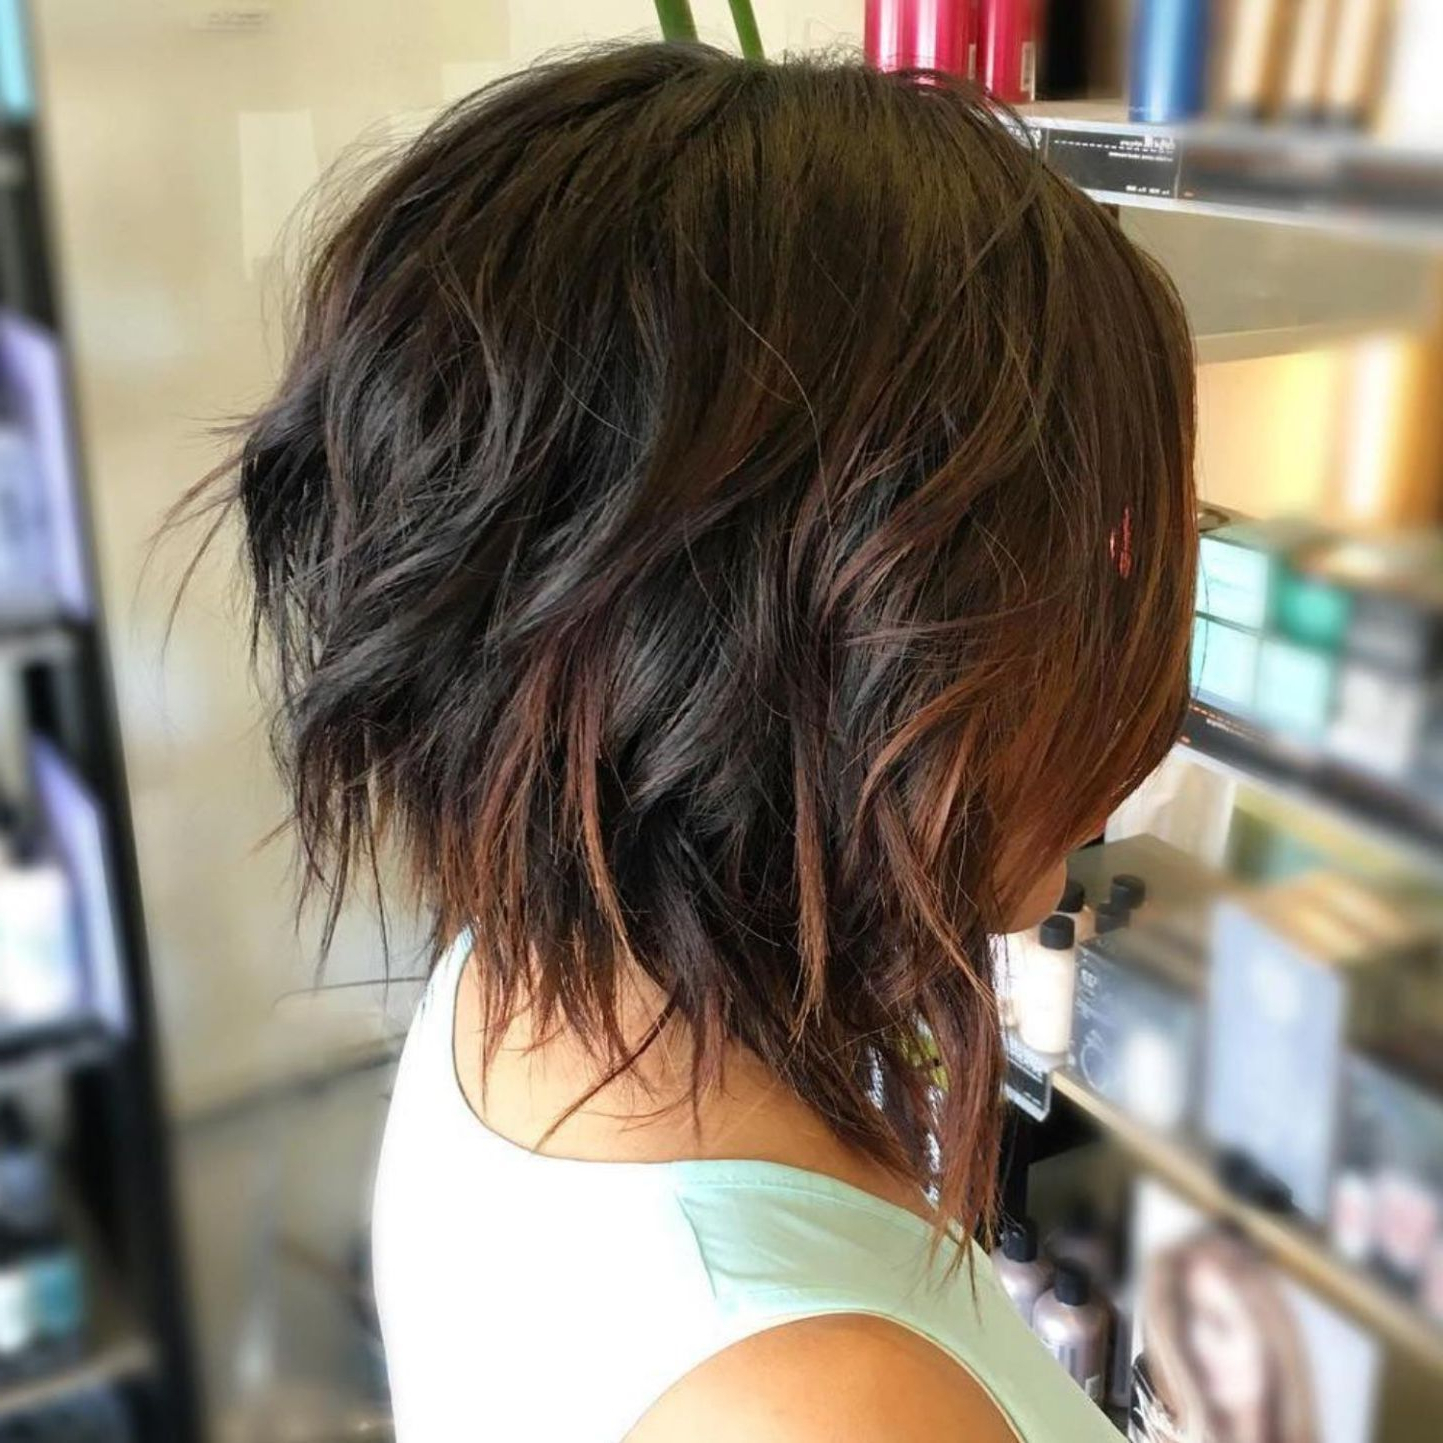 Pin On Hair For Angled Bob Hairstyles With Razored Ends (View 16 of 20)